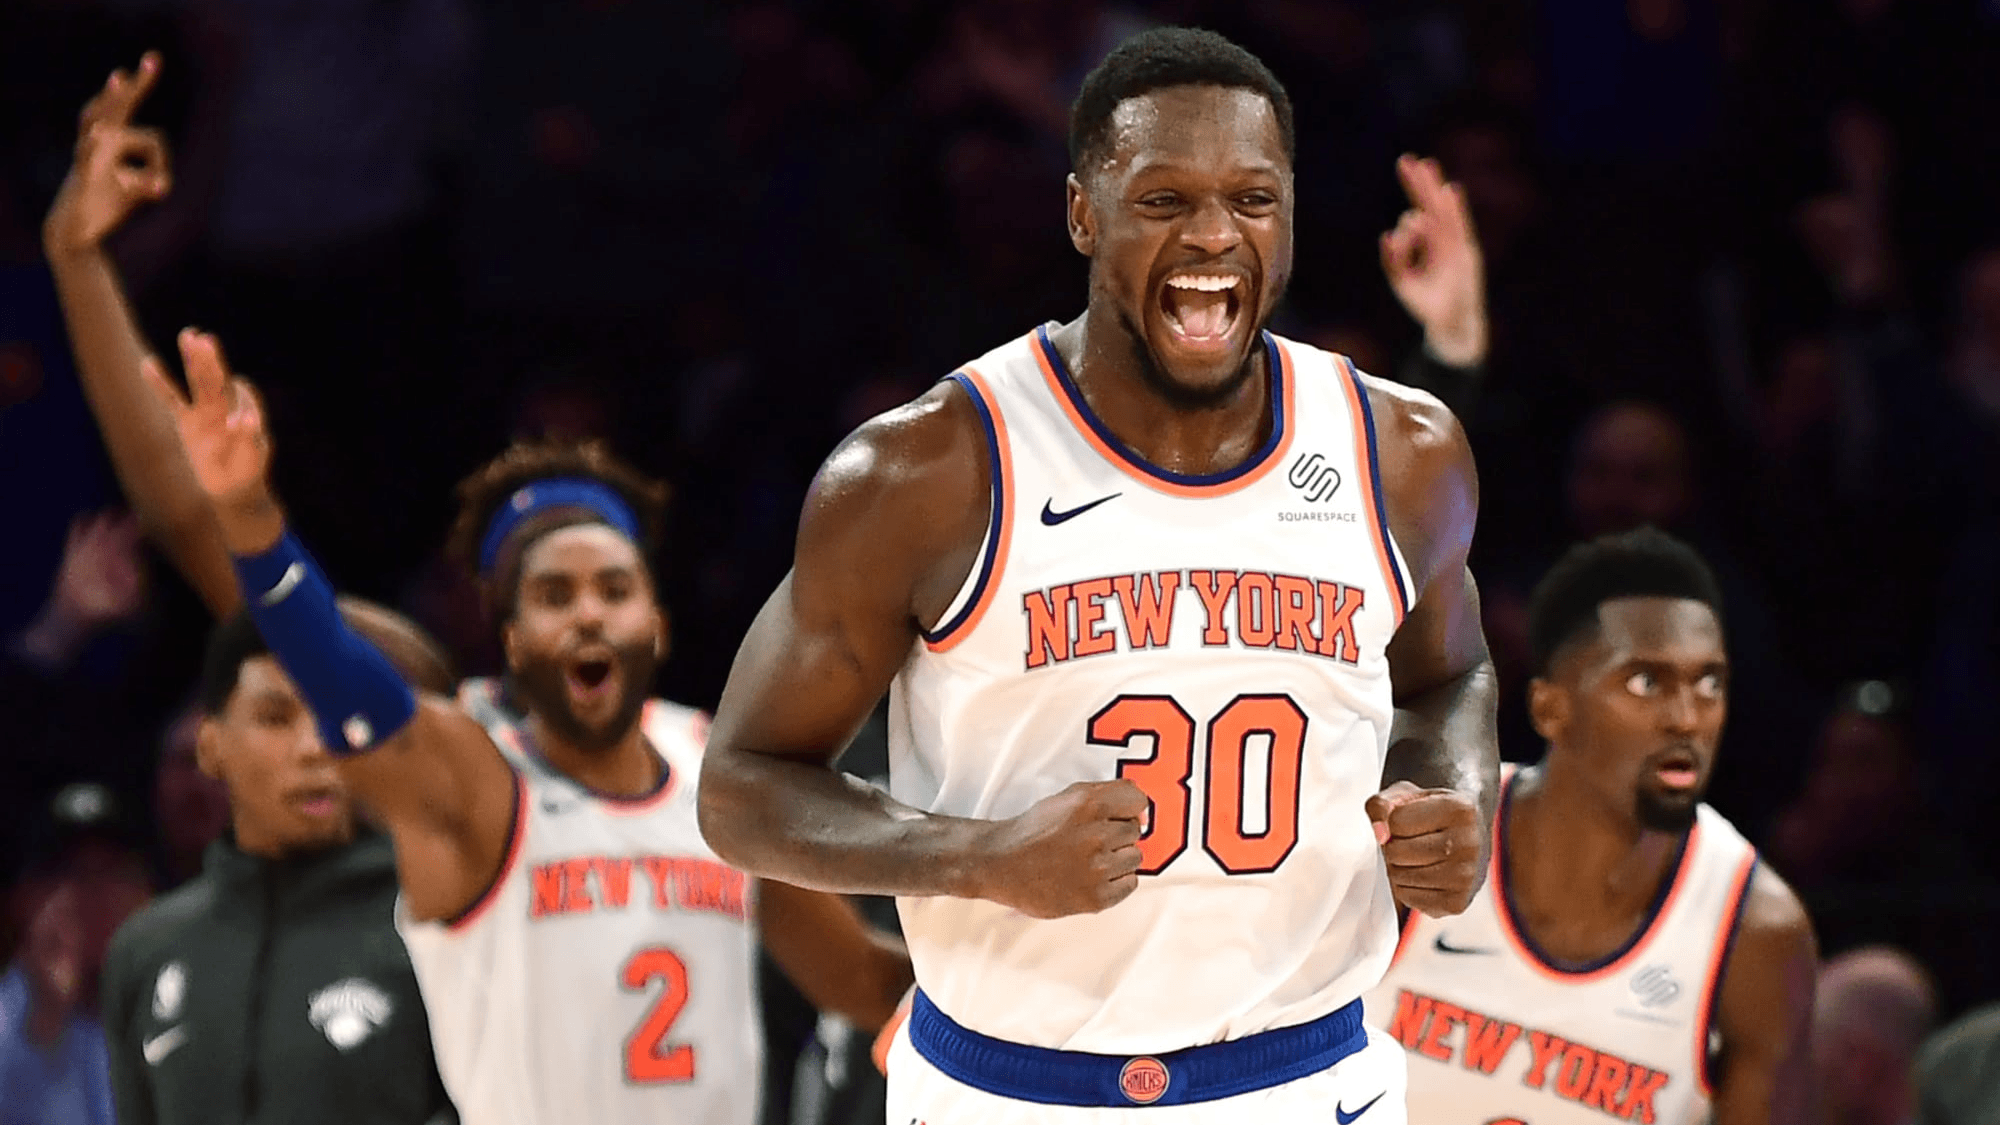 Betting Preview: The Knicks' Top Defense Looks to Shut Down Red Hot Pistons